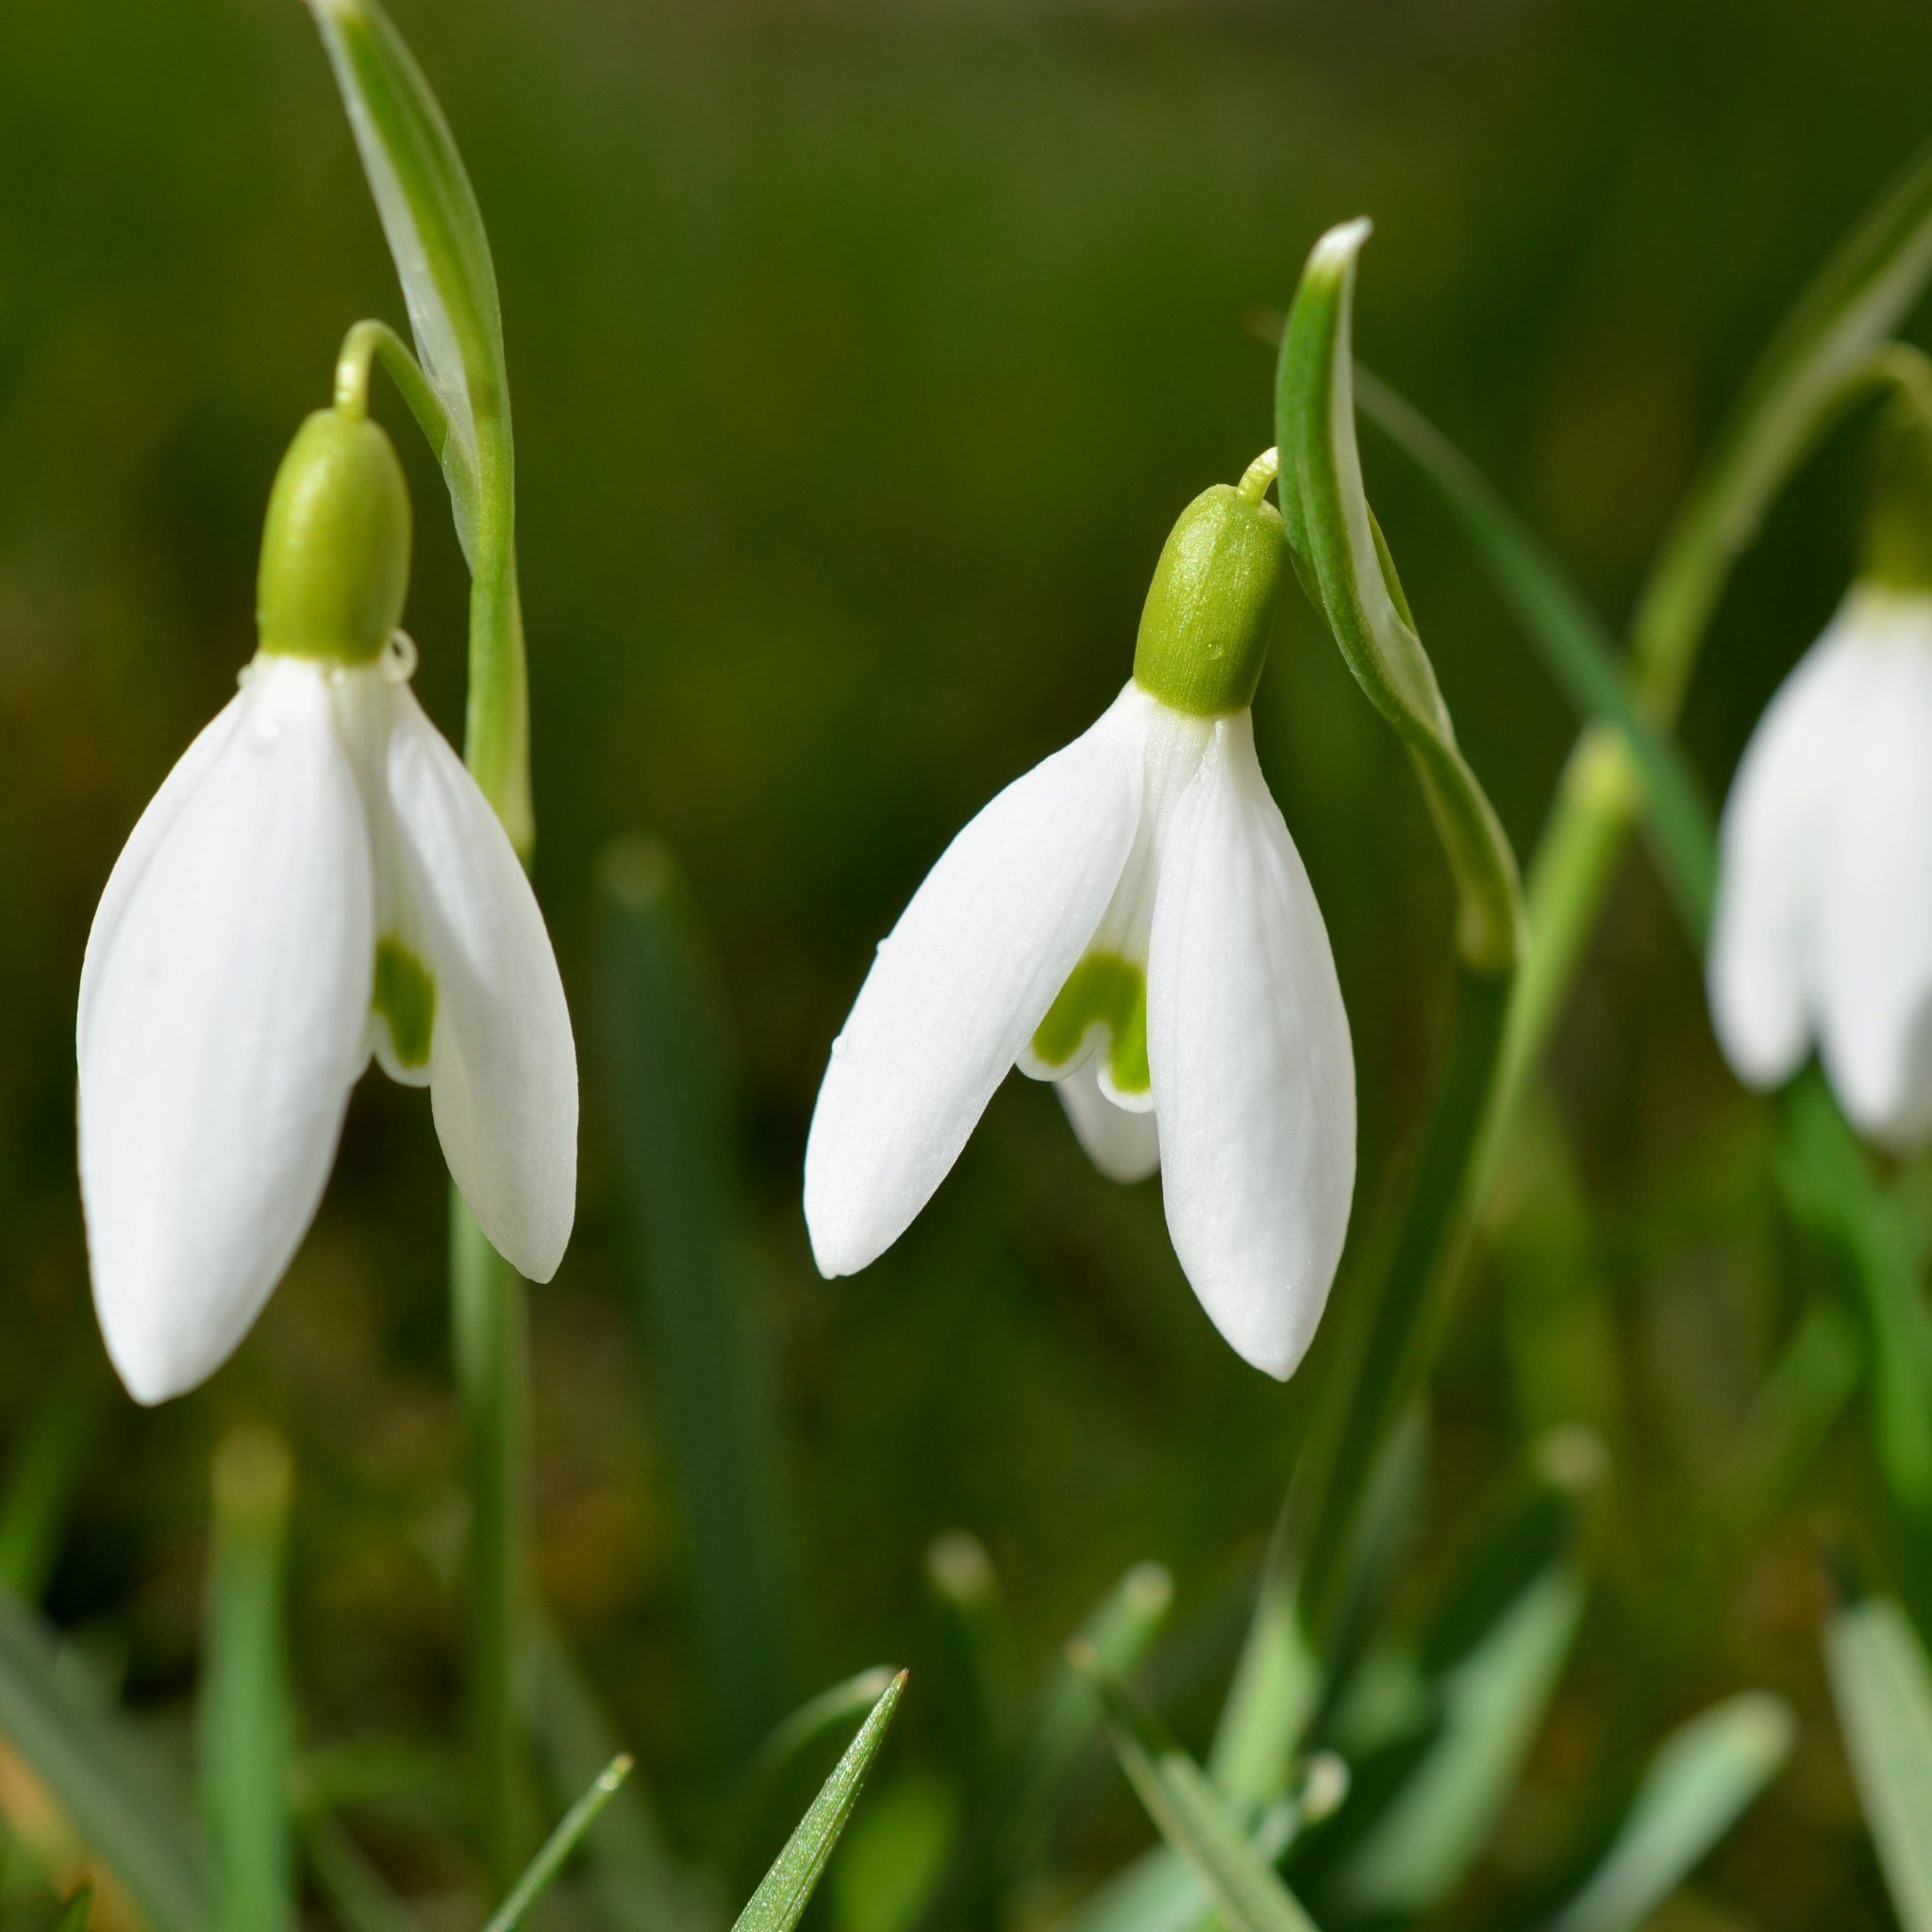 snowdrops flowers spring tap to see more dream of spring flowery